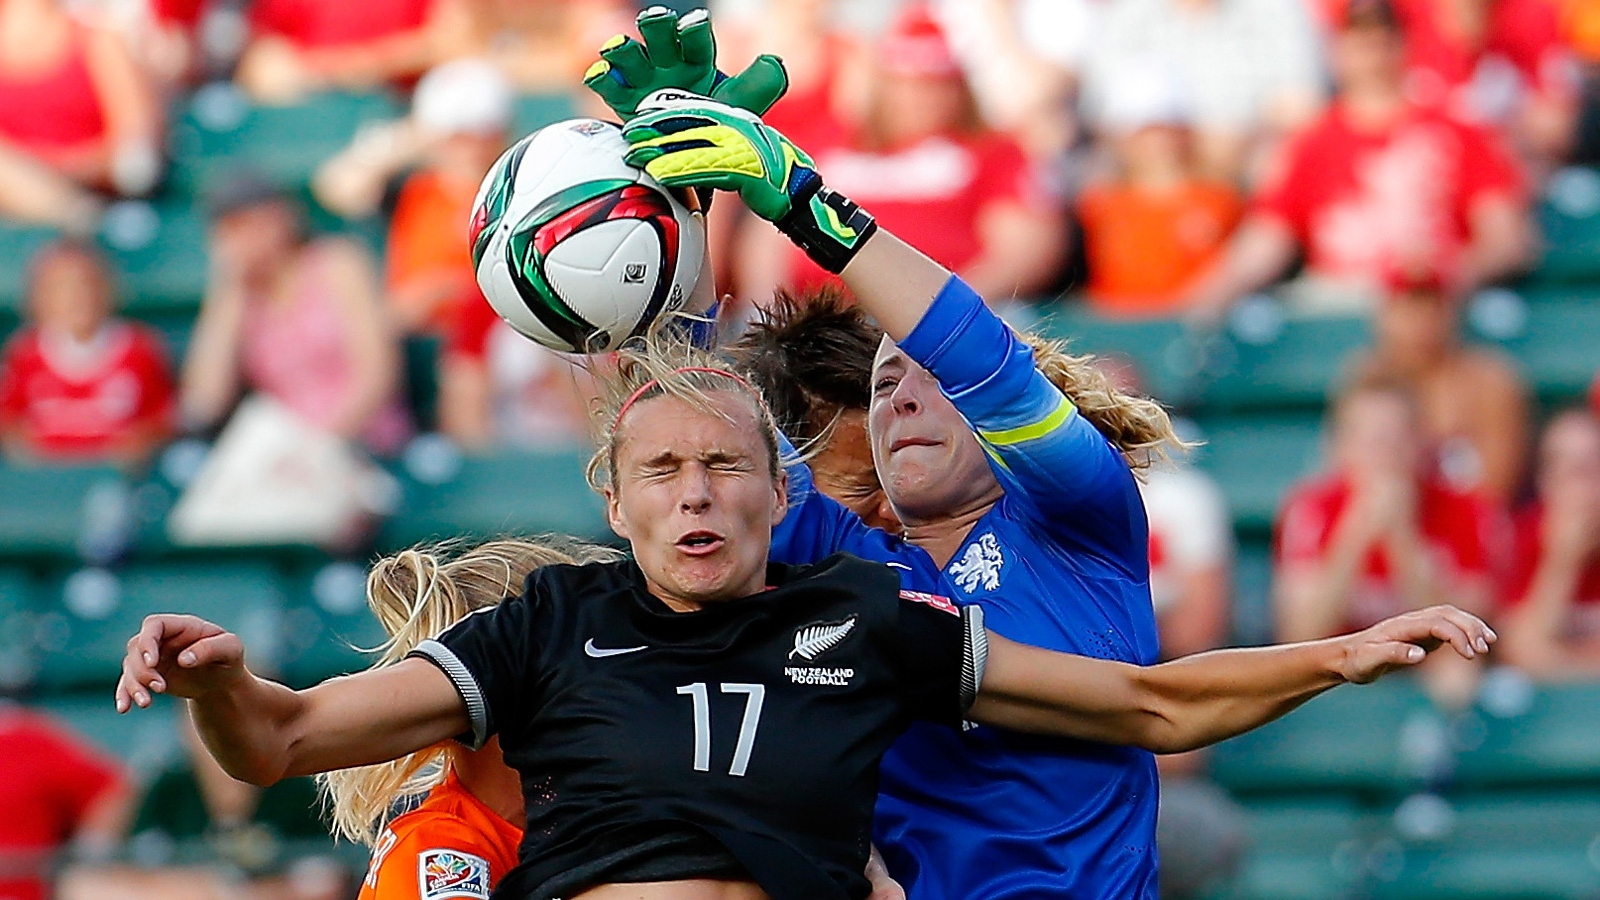 Netherlands goalkeeper Loes Geurts defends a corner kick against New Zealand's Hannah Wilkinson and Sarah Gregorius.